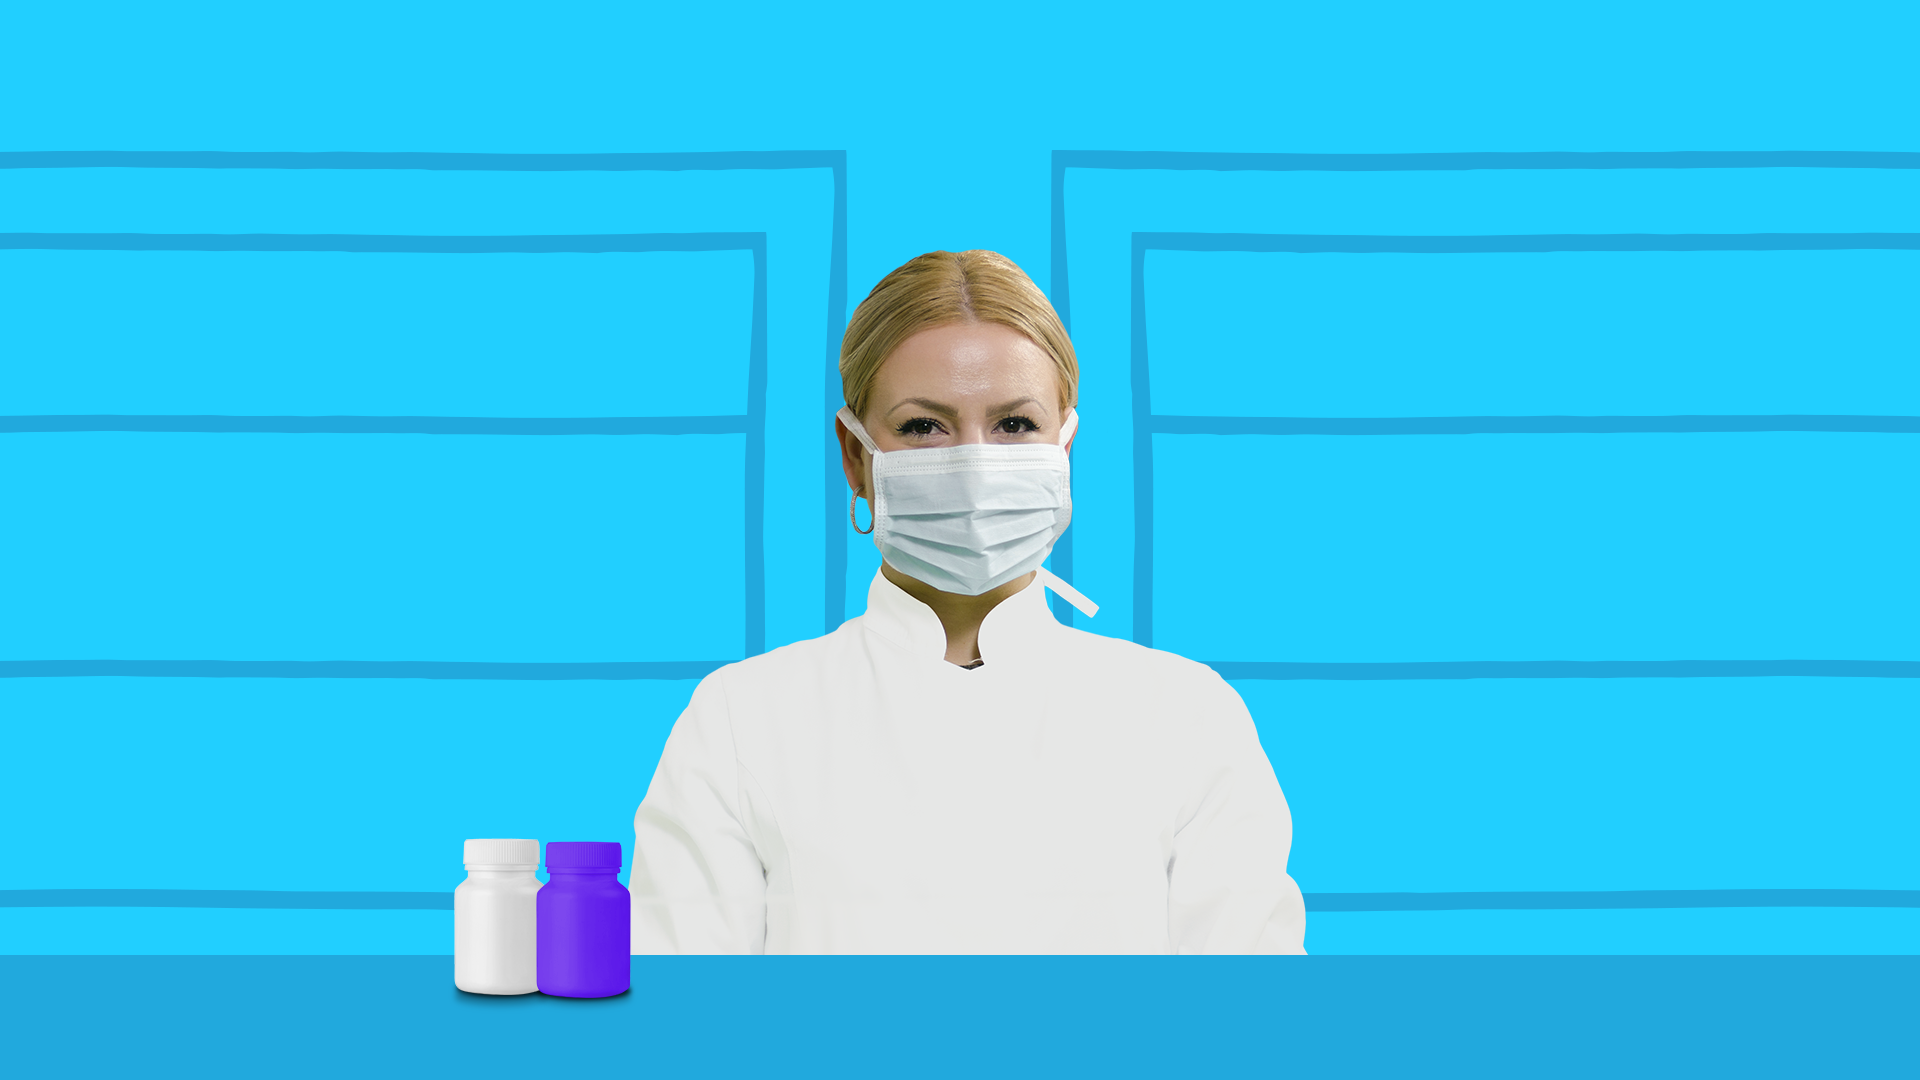 How to help patients through the COVID-19 pandemic